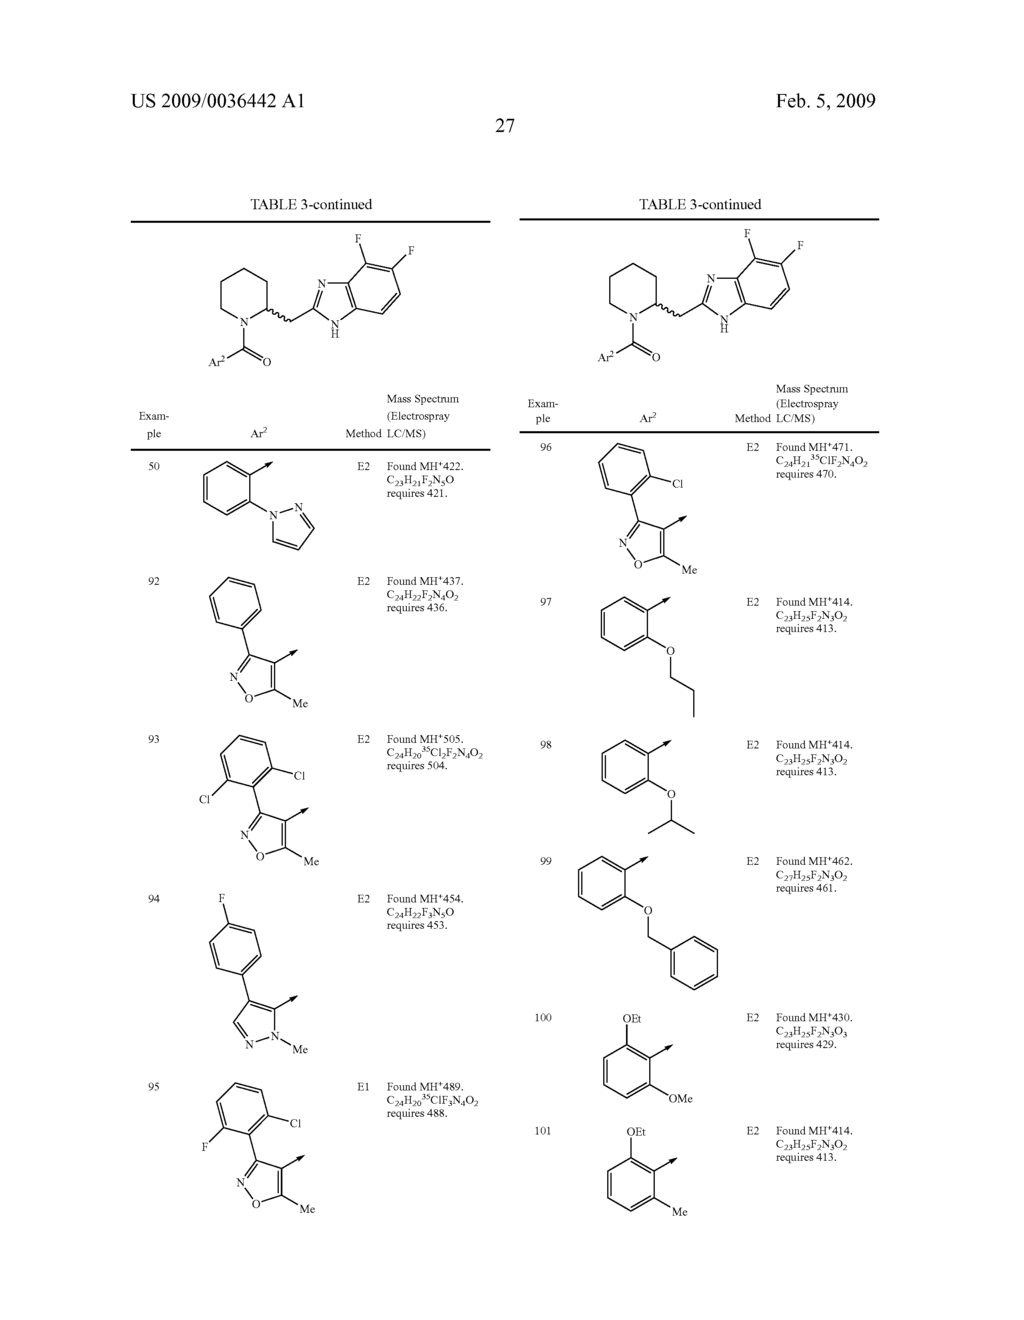 N-AROYL CYCLIC AMINE DERIVATIVES AS OREXIN RECEPTOR ANTAGONISTS - diagram, schematic, and image 28